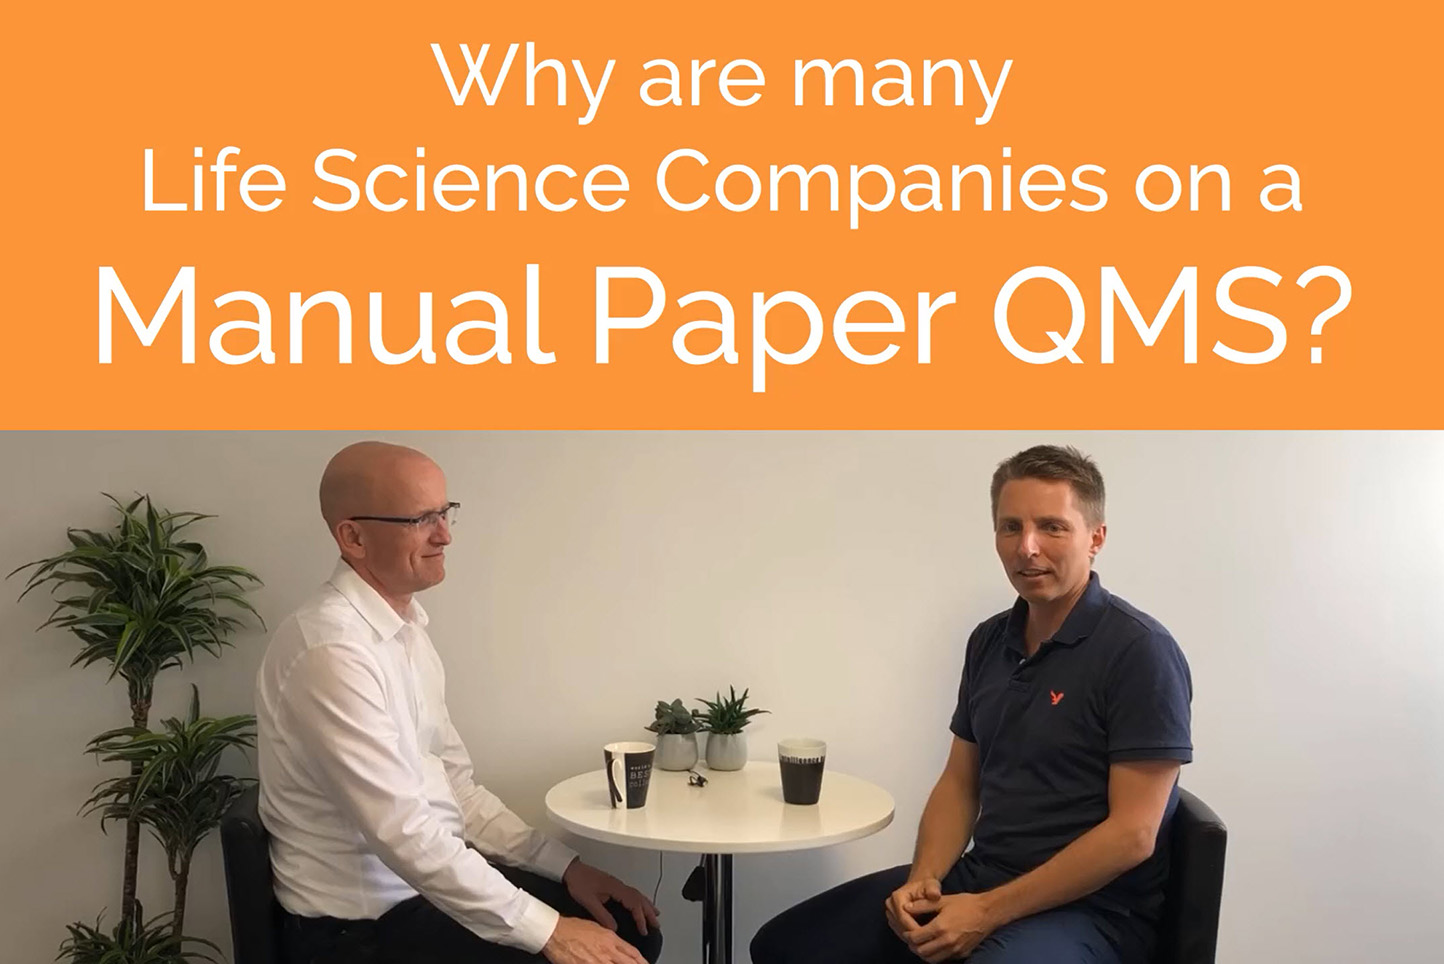 Why are life science companies on a Manual Paper QMS website